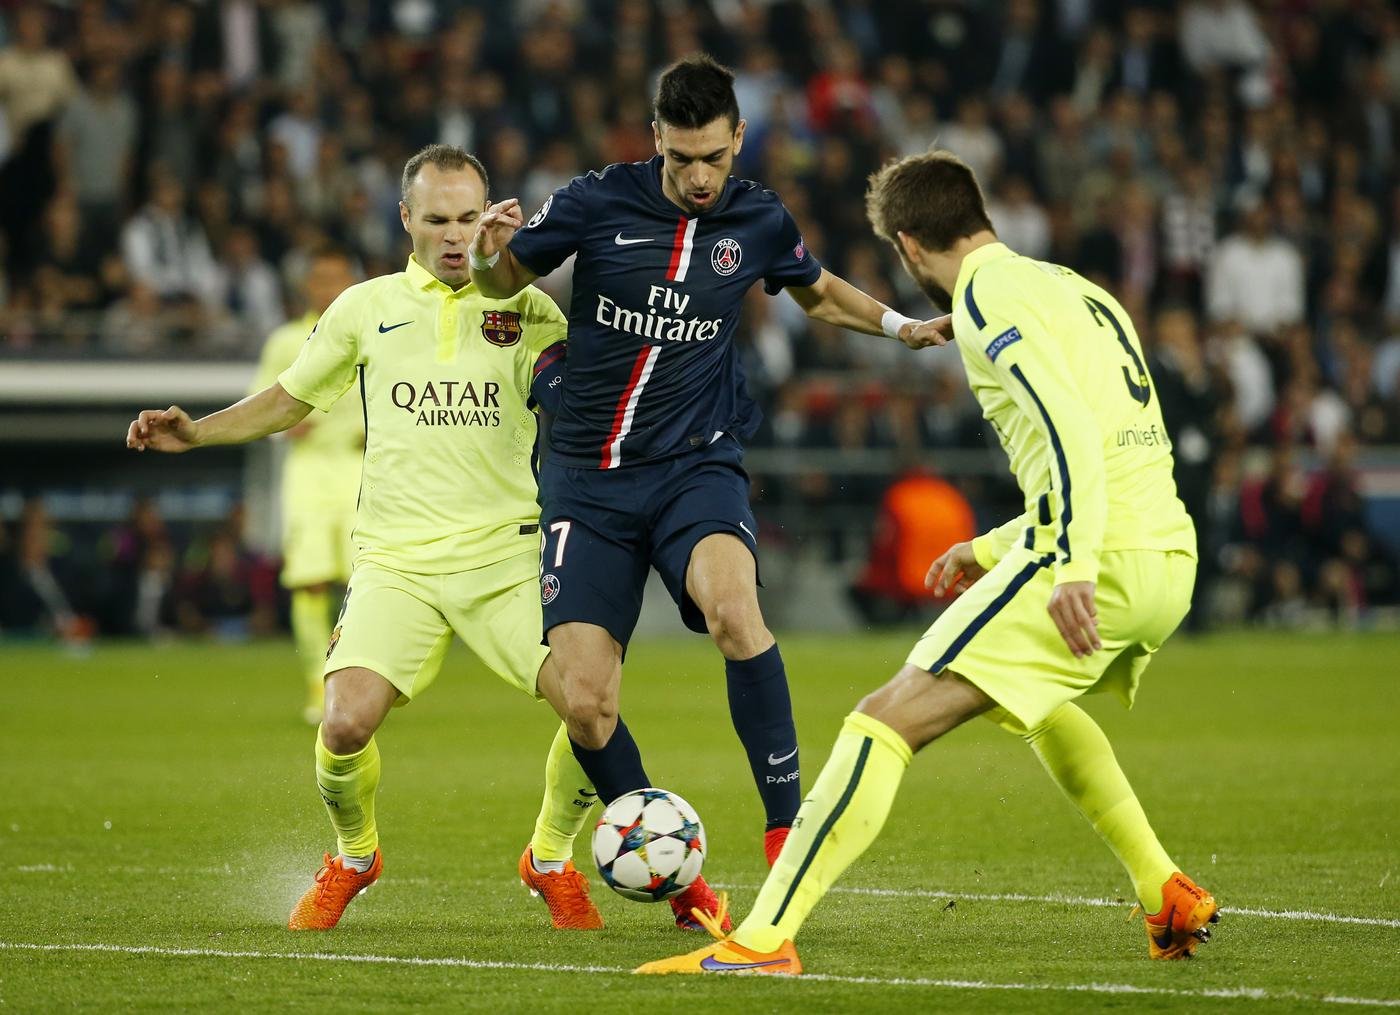 Chelsea boss Jose Mourinho eyeing Javier Pastore transfer from Parsi Saint-Germain- report